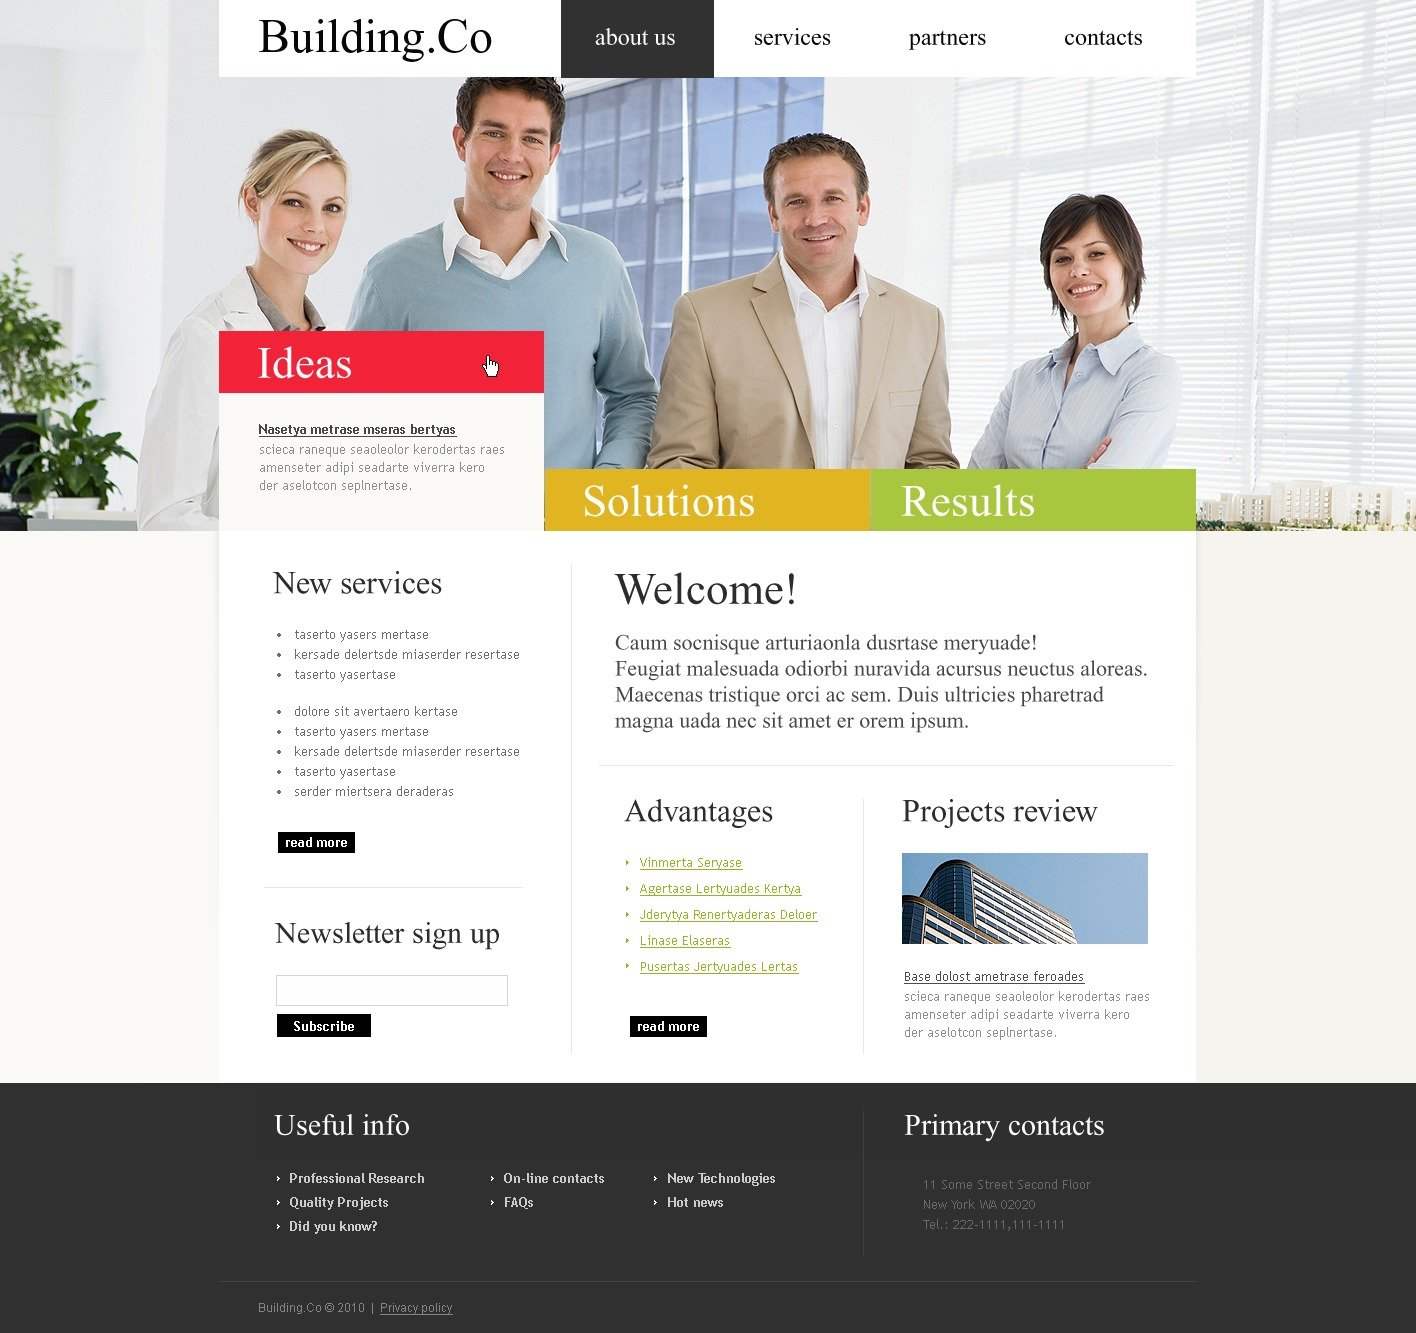 The Building Co Architecture Company PSD Design 54226, one of the best PSD templates of its kind (architecture, wide, jquery), also known as Building co architecture company PSD template, buildings PSD template, technology PSD template, innovation PSD template, skyscrapers PSD template, projects PSD template, constructions PSD template, houses PSD template, work PSD template, team PSD template, strategy PSD template, services PSD template, support PSD template, planning solutions design PSD template, non-standard PSD template, creative ideas PSD template, catalogue PSD template, windows PSD template, doors PSD template, equipme and related with Building co architecture company, buildings, technology, innovation, skyscrapers, projects, constructions, houses, work, team, strategy, services, support, planning solutions design, non-standard, creative ideas, catalogue, windows, doors, equipme, etc.